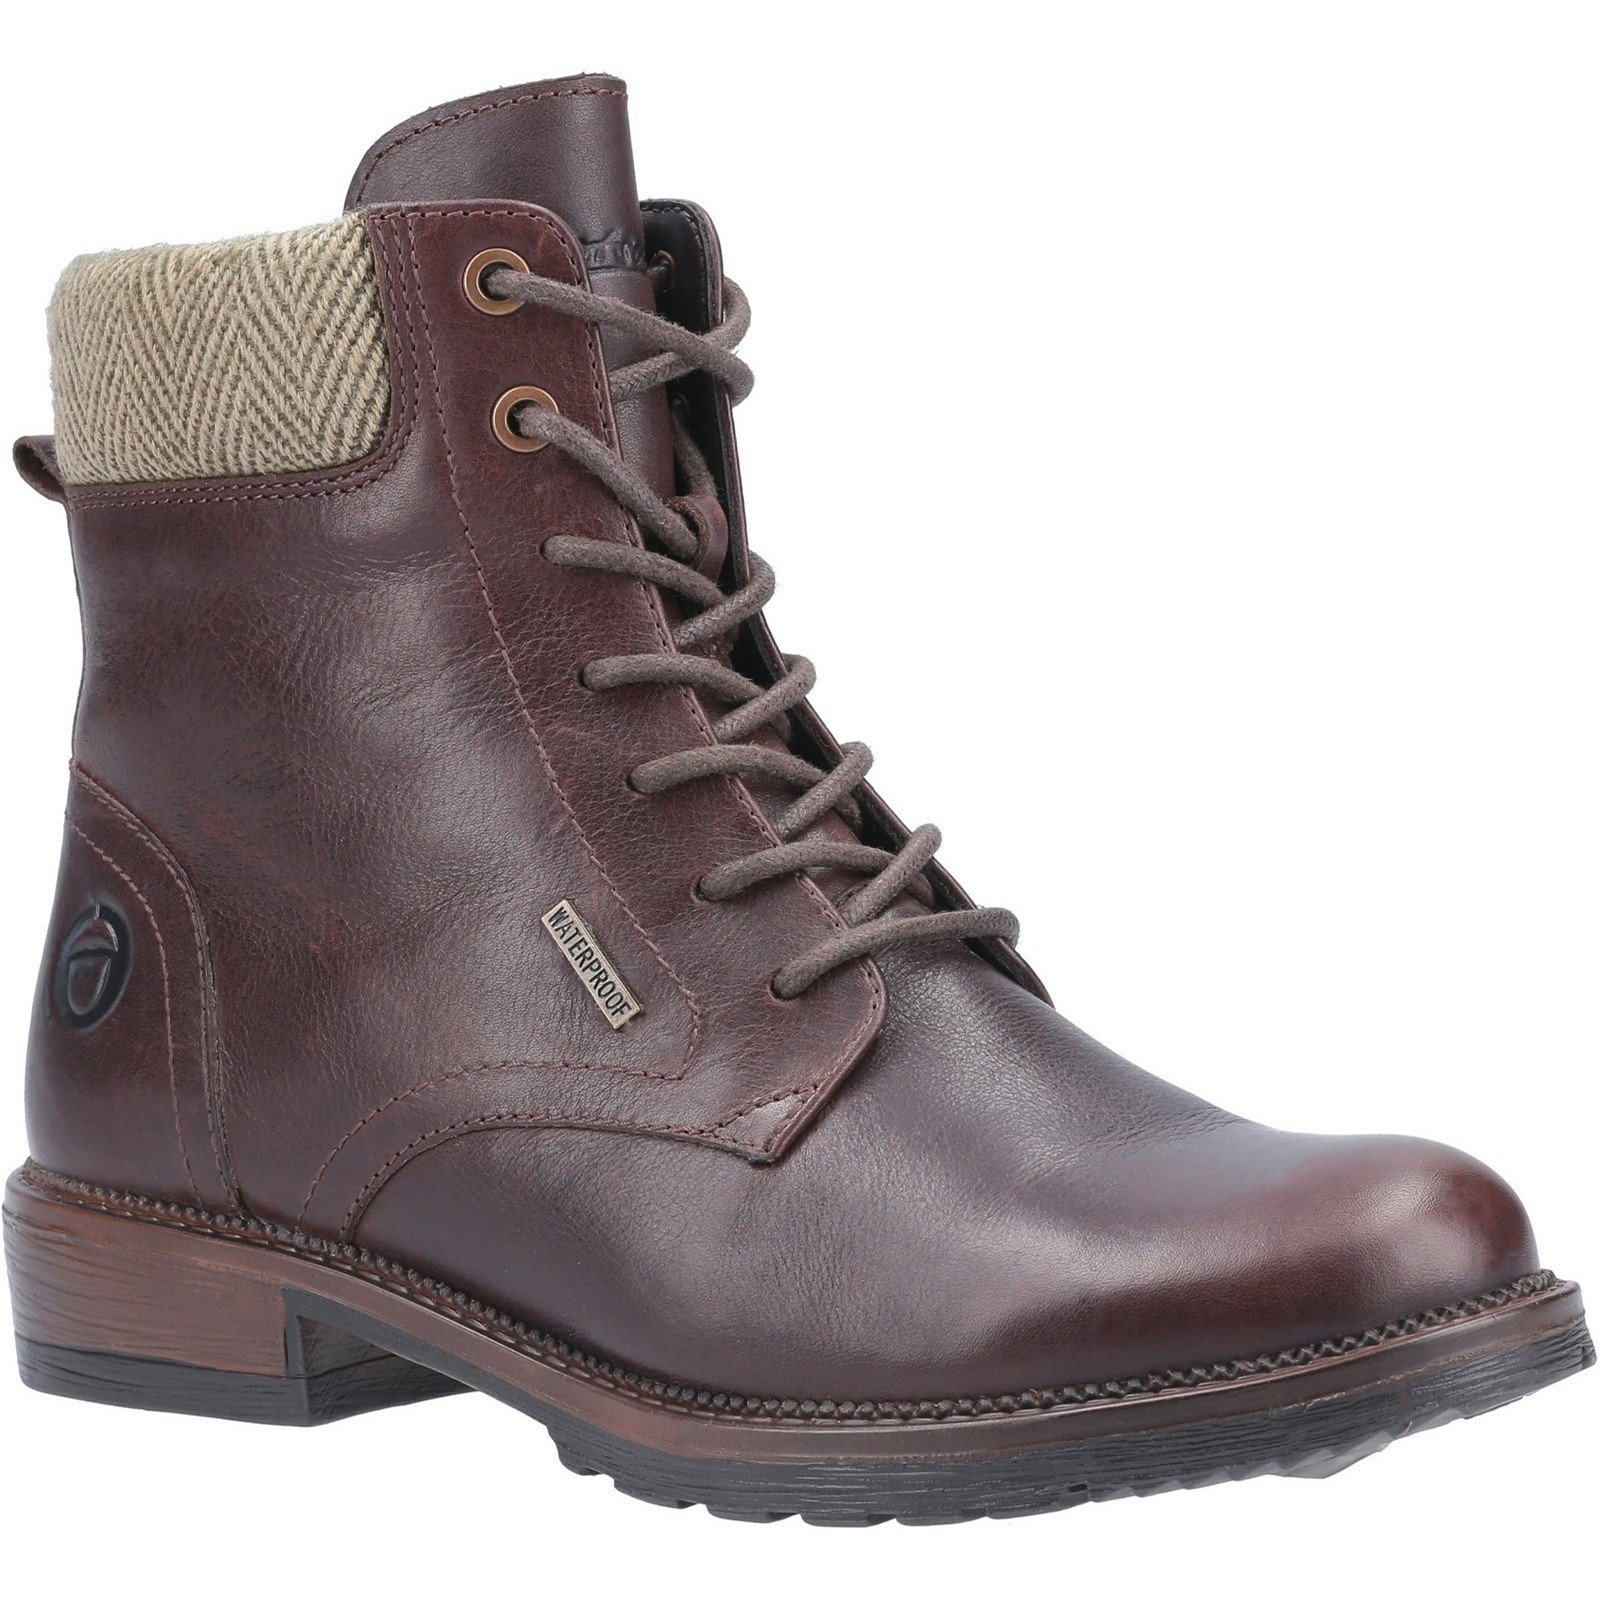 Cotswold Women's Minety High Top Lace Up Ankle Boot Brown 29249 - Brown 3